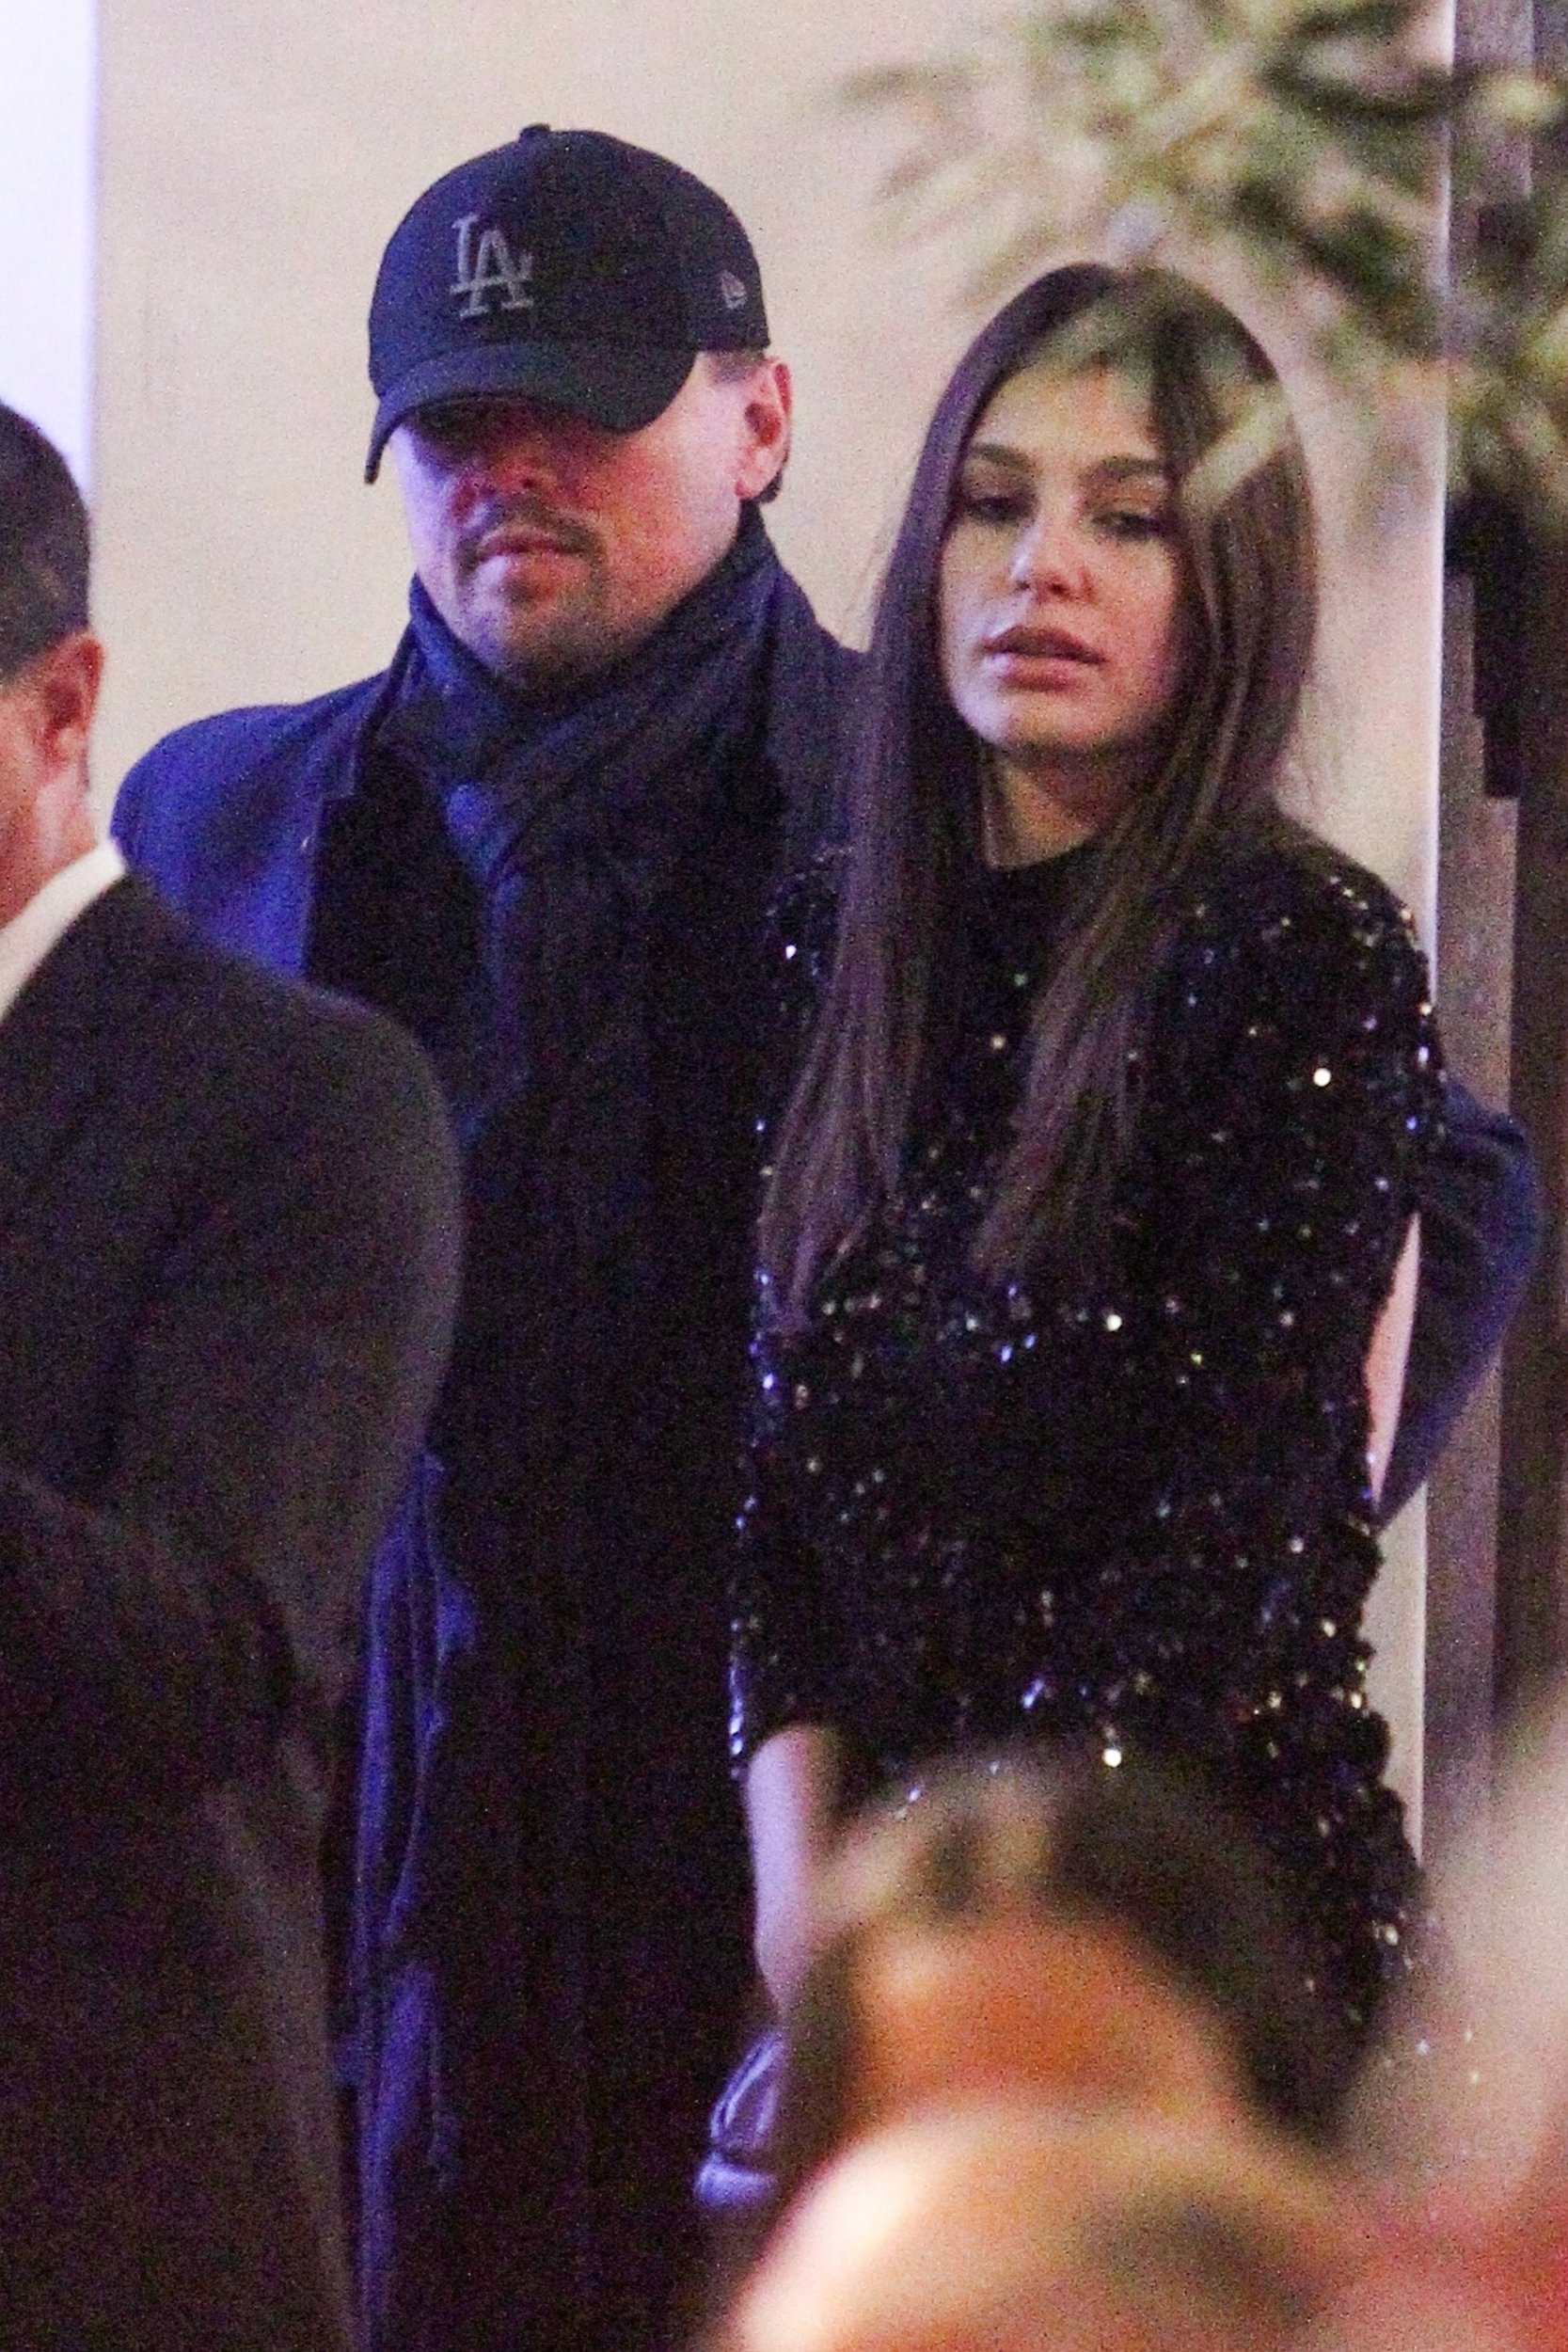 Beverly Hills, CA - *EXCLUSIVE* - Leonardo Dicaprio, 44, and 21 year old girlfriend Camila Morrone enjoy a night among the stars at Seth MacFarlane's holiday party. Camila sparkles in a festive and sexy sequin cocktail dress with a back cutout as her beau kept a low profile in navy. Camila's mom model Lucila Sola was also spotted at the celebrity studded party. Pictured: Leonardo Dicaprio, Camila Morrone BACKGRID USA 16 DECEMBER 2018 BYLINE MUST READ: Roger / BACKGRID USA: +1 310 798 9111 / usasales@backgrid.com UK: +44 208 344 2007 / uksales@backgrid.com *UK Clients - Pictures Containing Children Please Pixelate Face Prior To Publication*